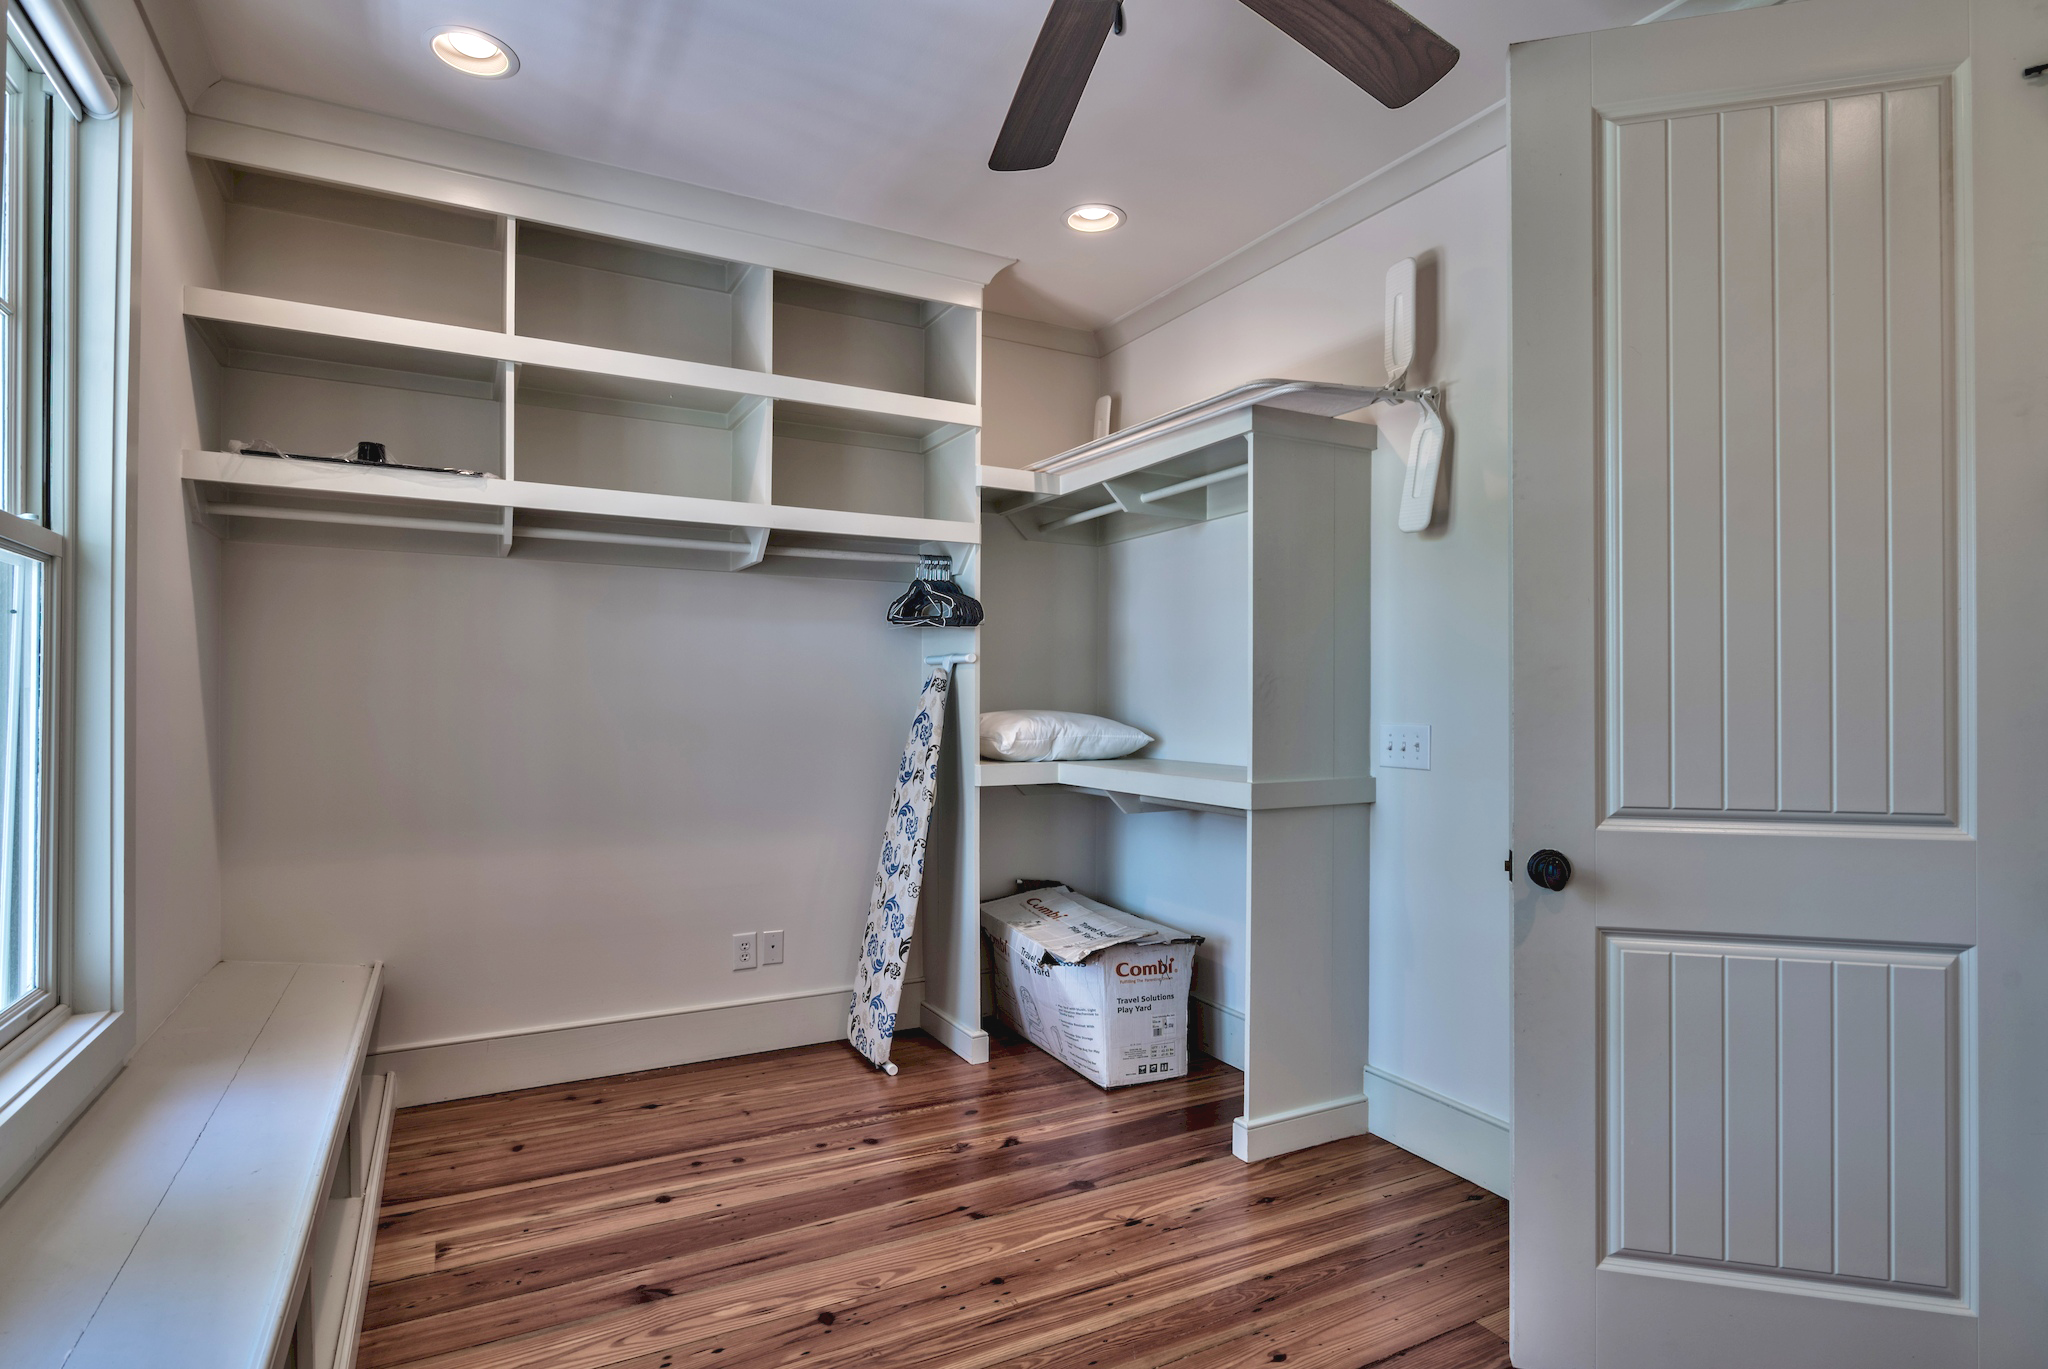 Lots of room for clothes and luggage in the master closet